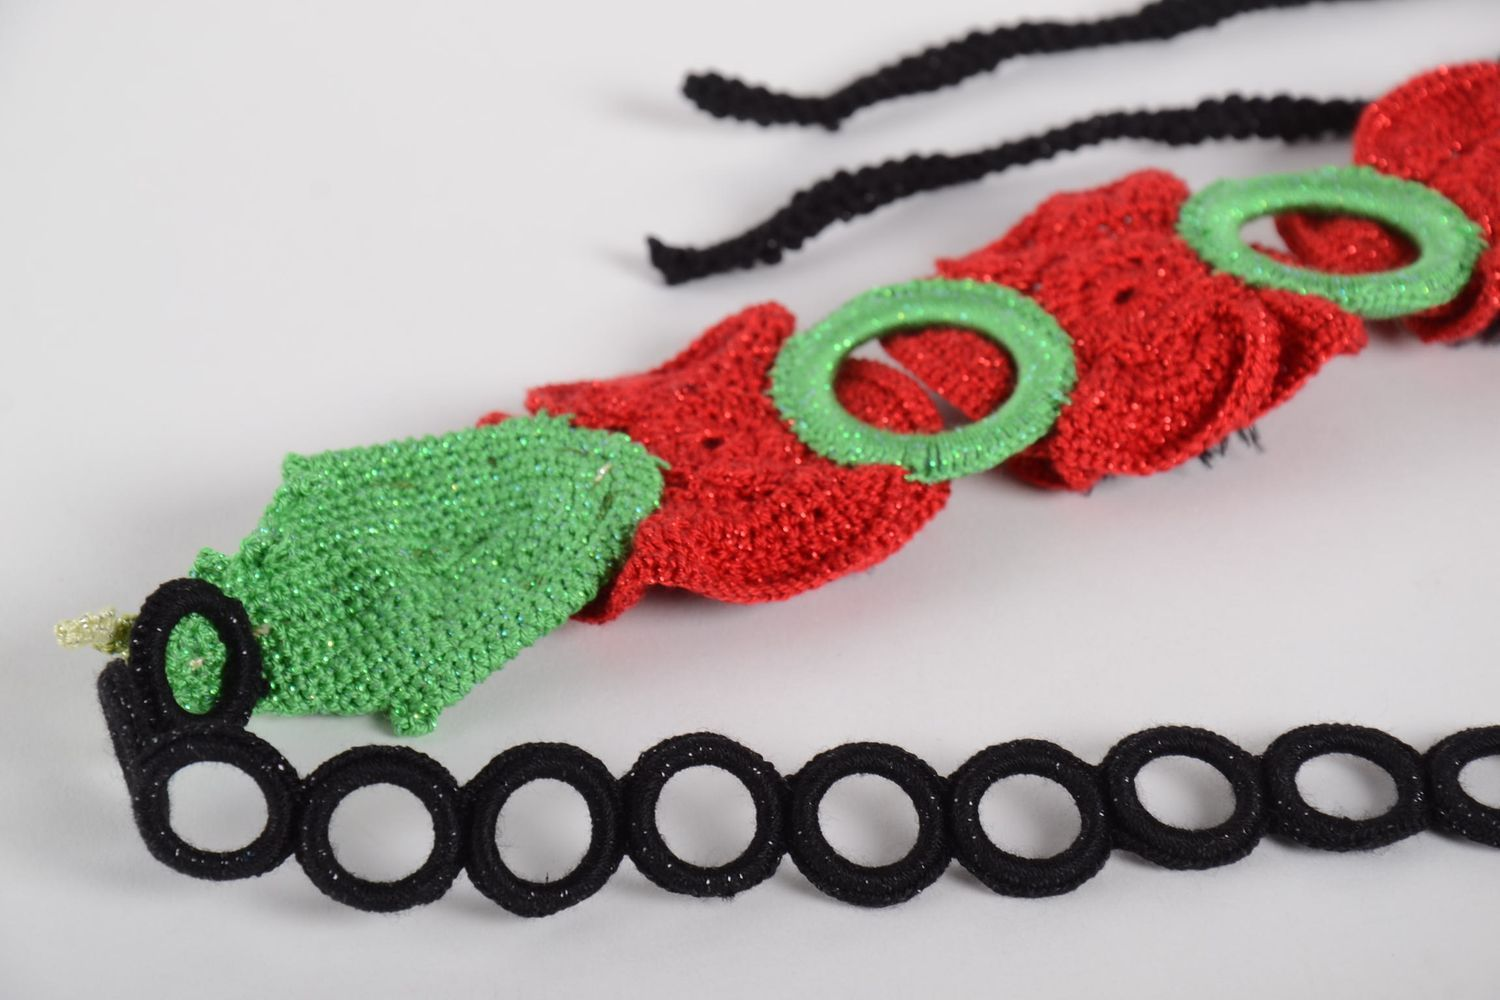 Handmade womens accessories crochet belt woven belt fashion accessories photo 8